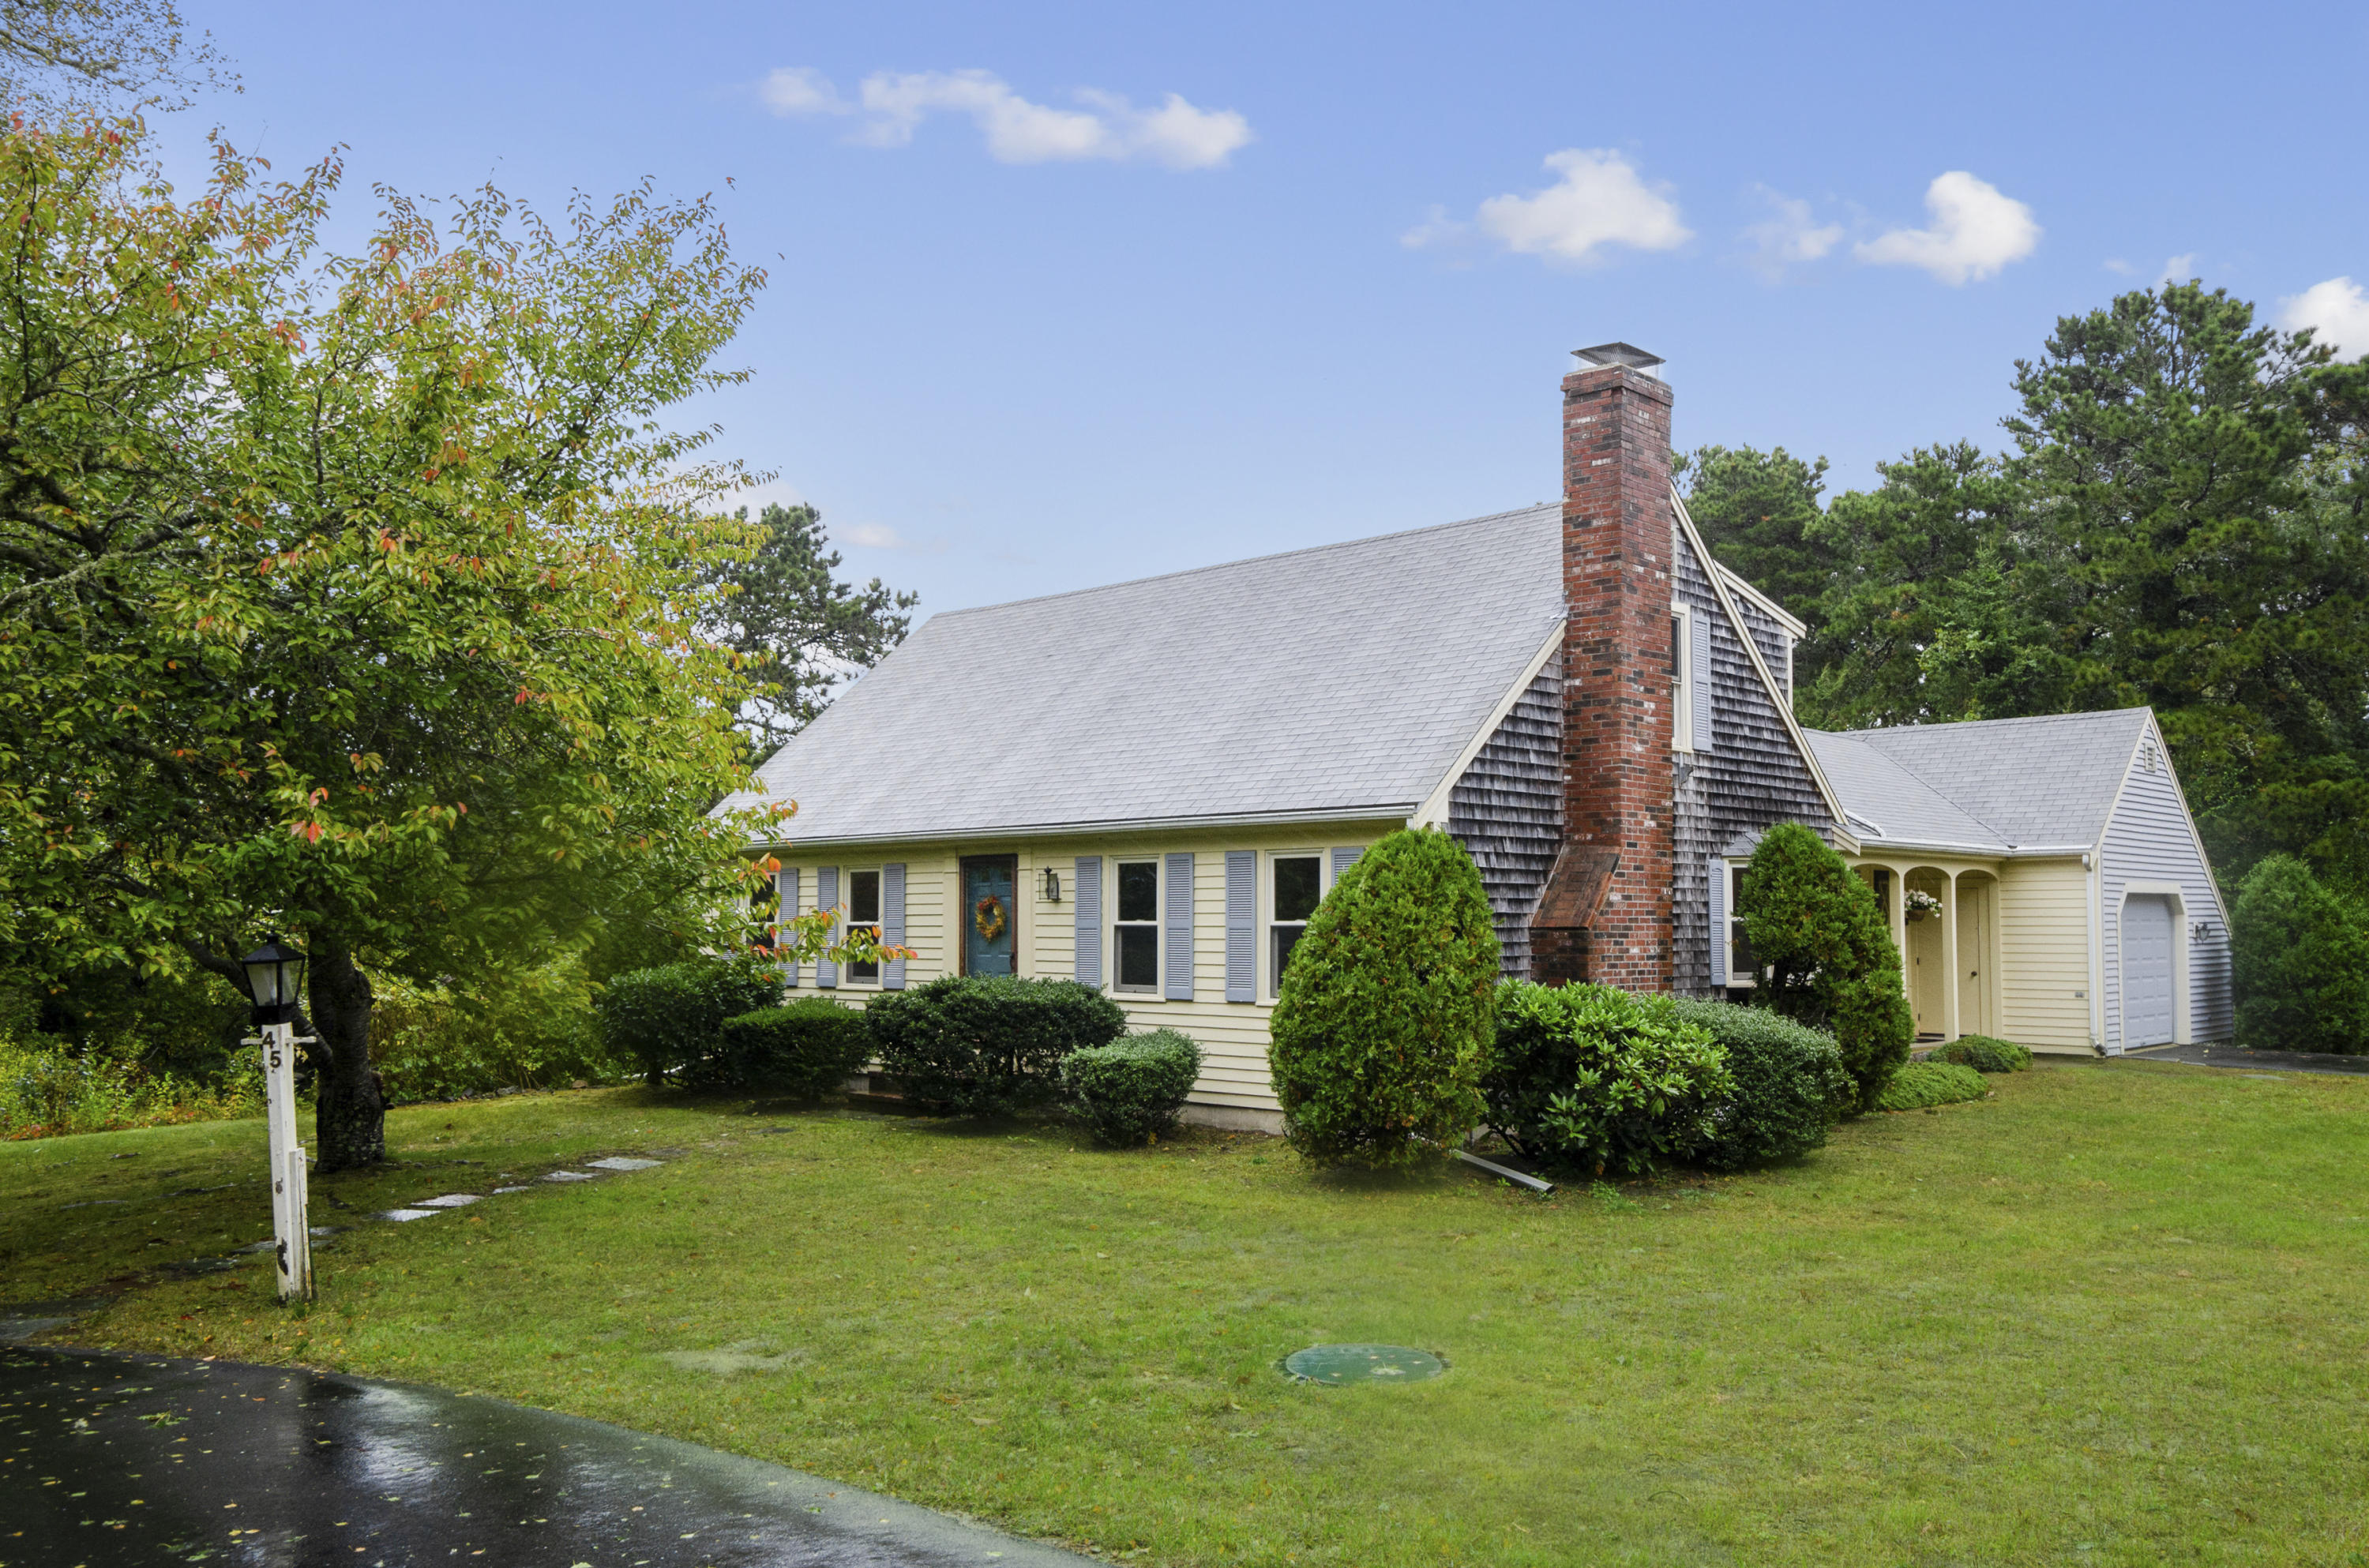 45-a-leonard-way-chatham-ma-02633